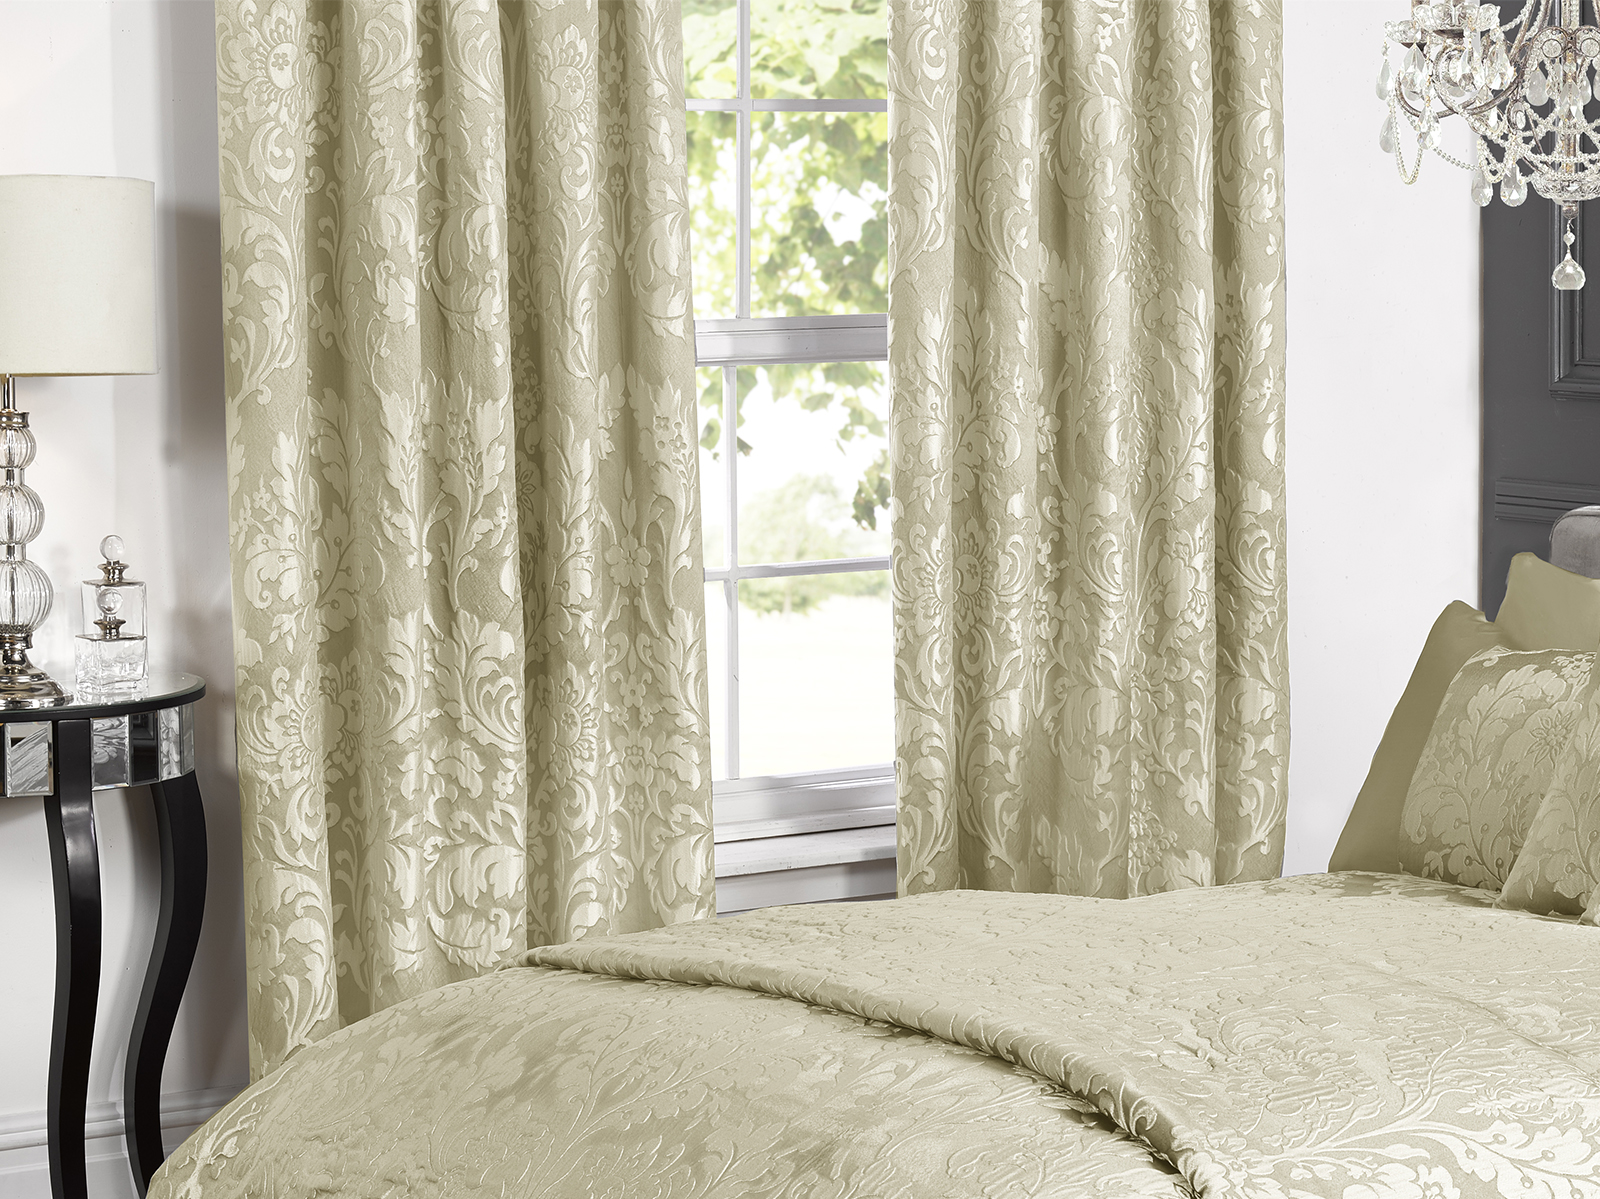 boston jacquard lined curtains in elegant cream damask floral design